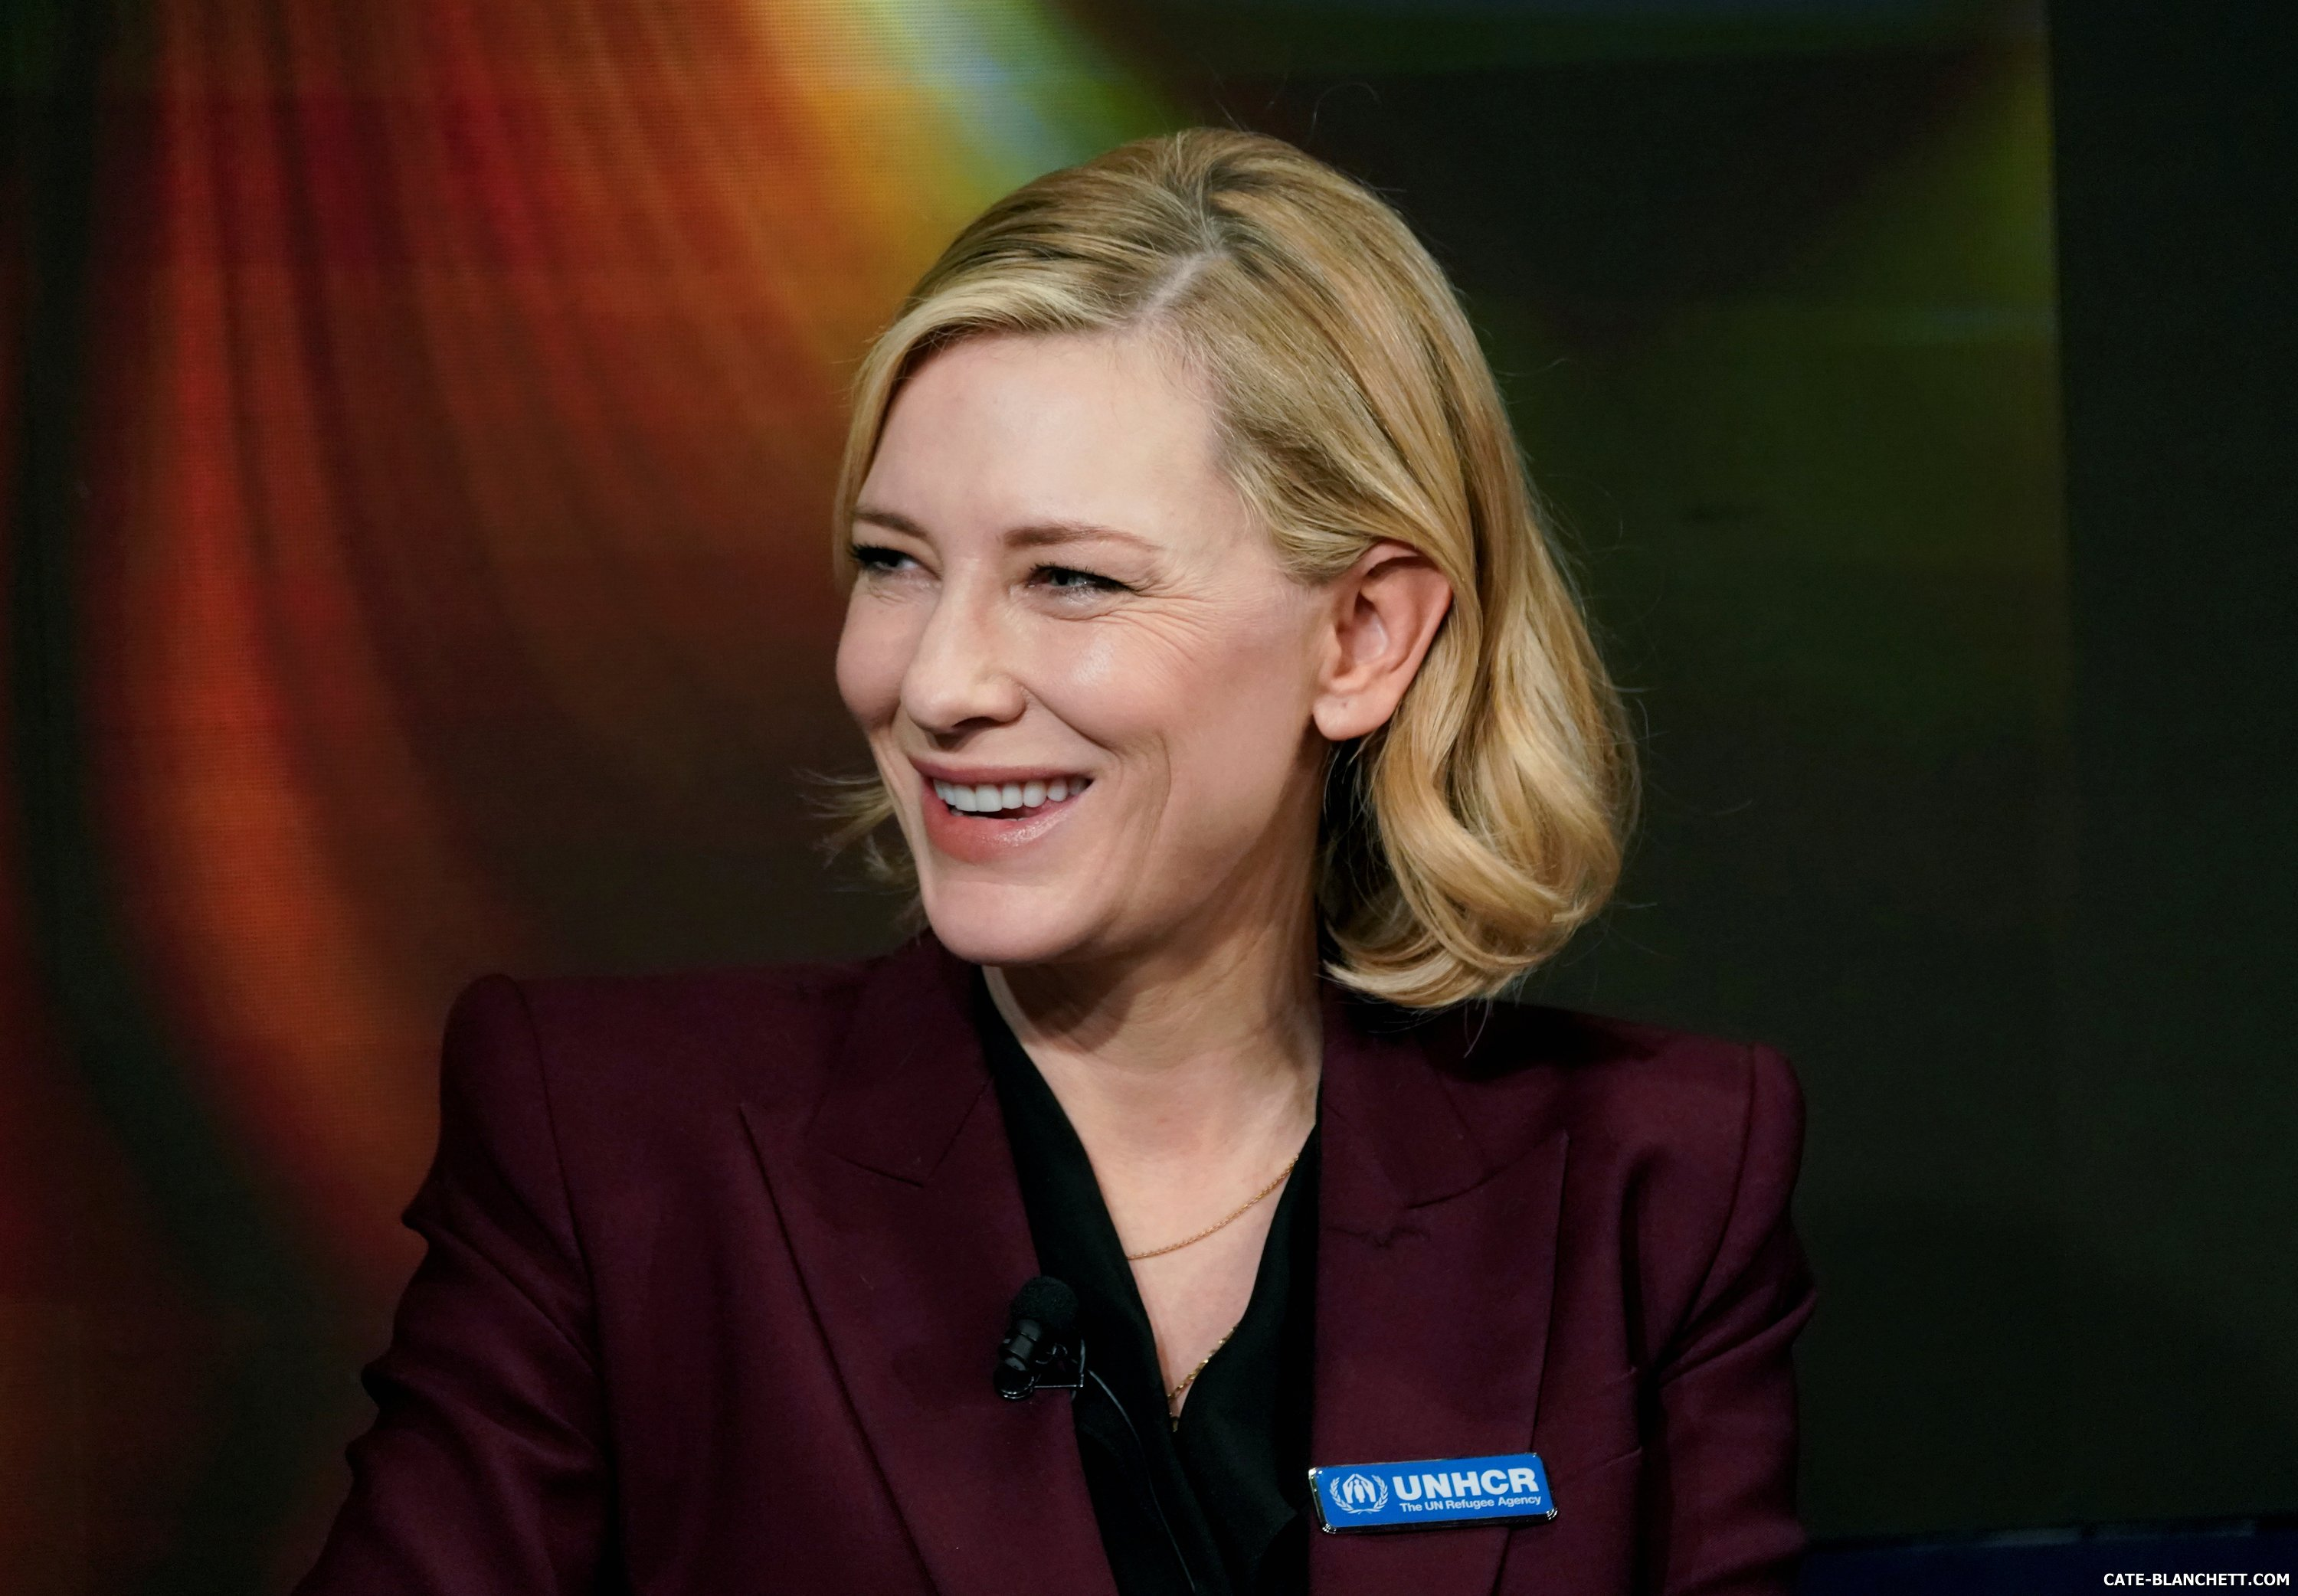 Full Interview – An Insight, An Idea with Cate Blanchett